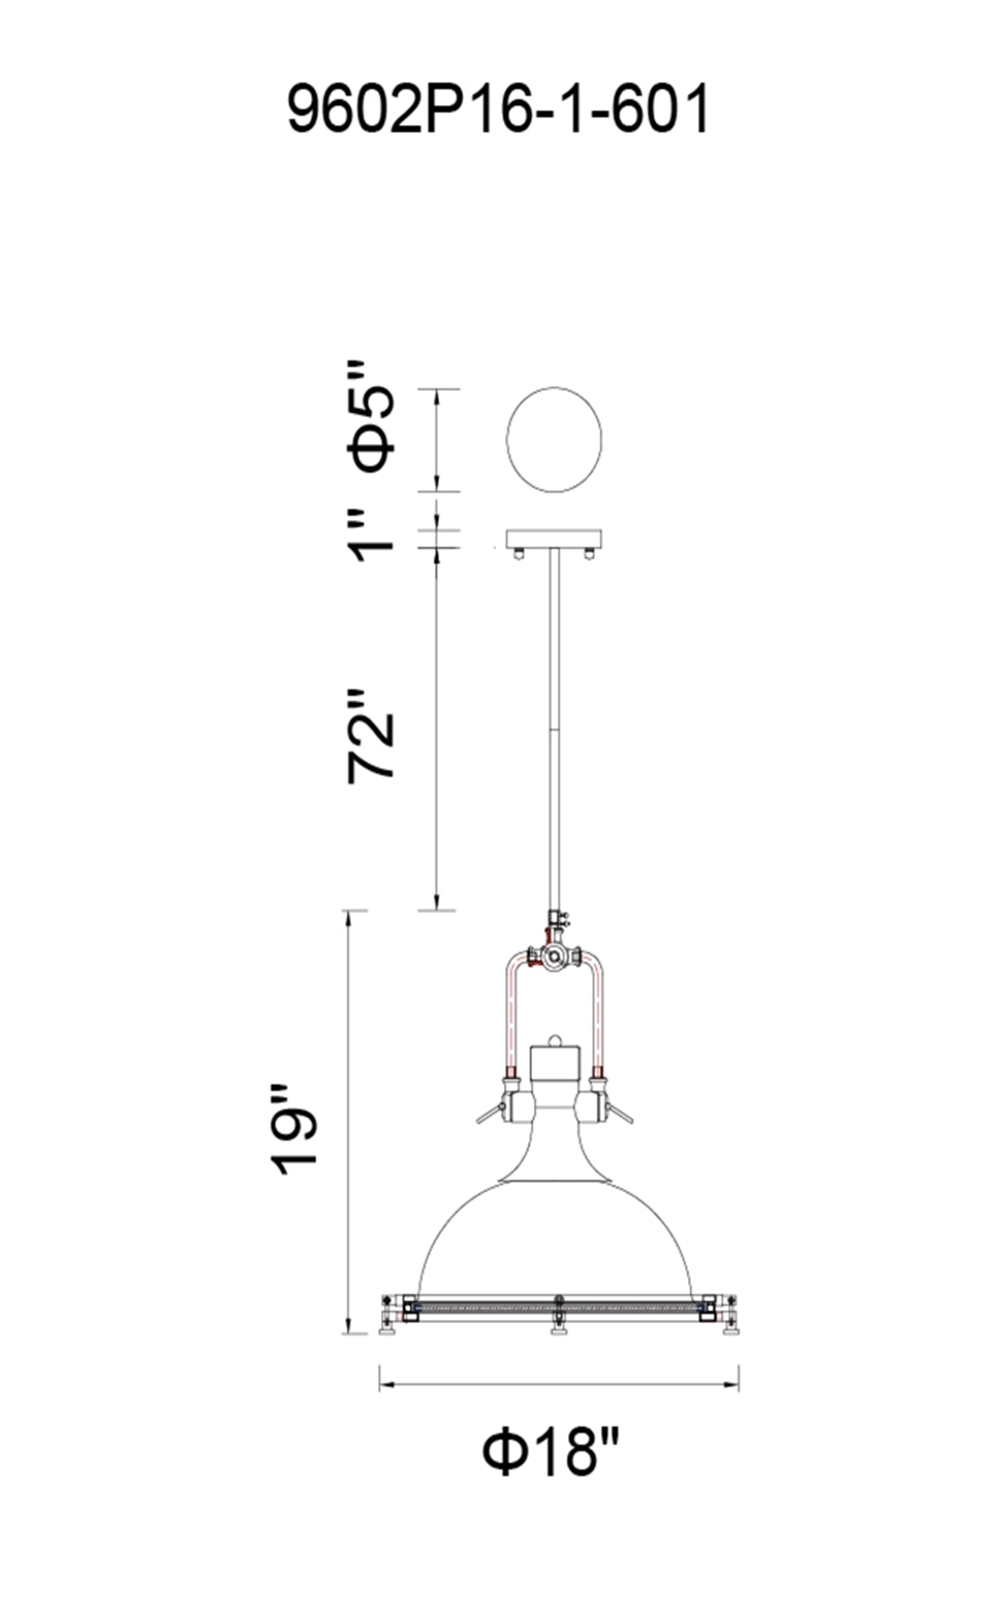 CWI Lighting Show 1 Light Down Pendant With Chrome Finish Model: 9602P16-1-601 Line Drawing